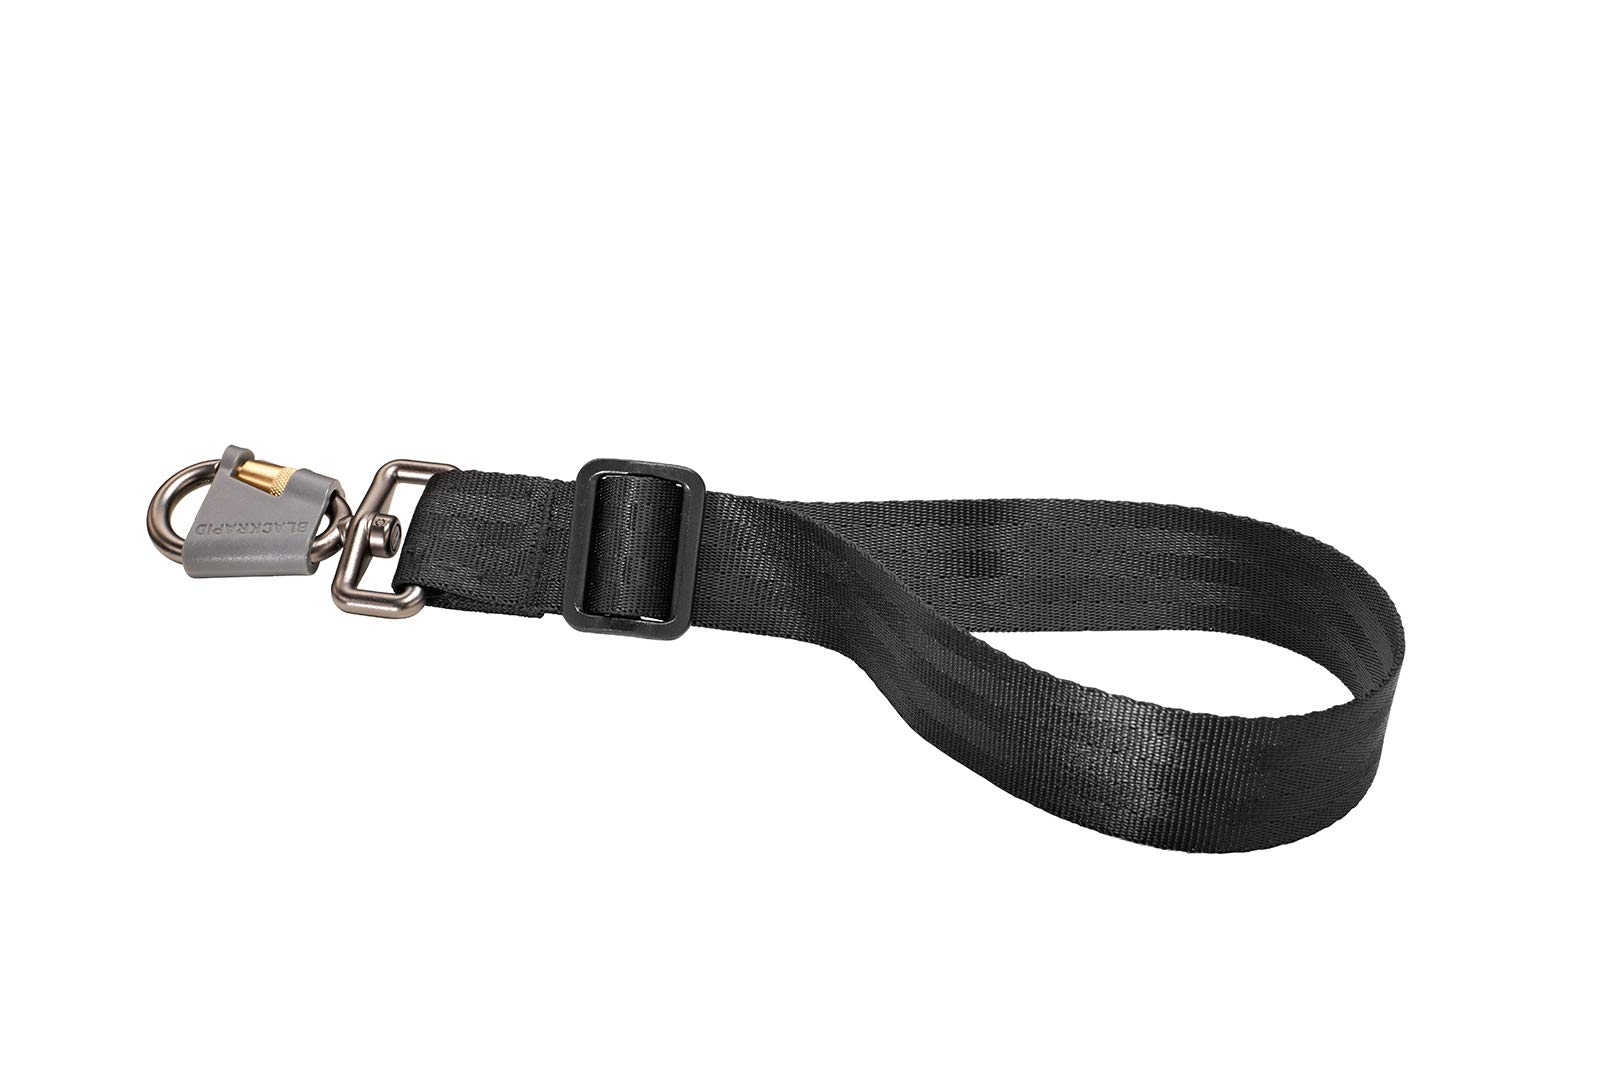 BlackRapid Breathe Wrist Camera Strap, 1 pc of Safety Tether Included by BlackRapid